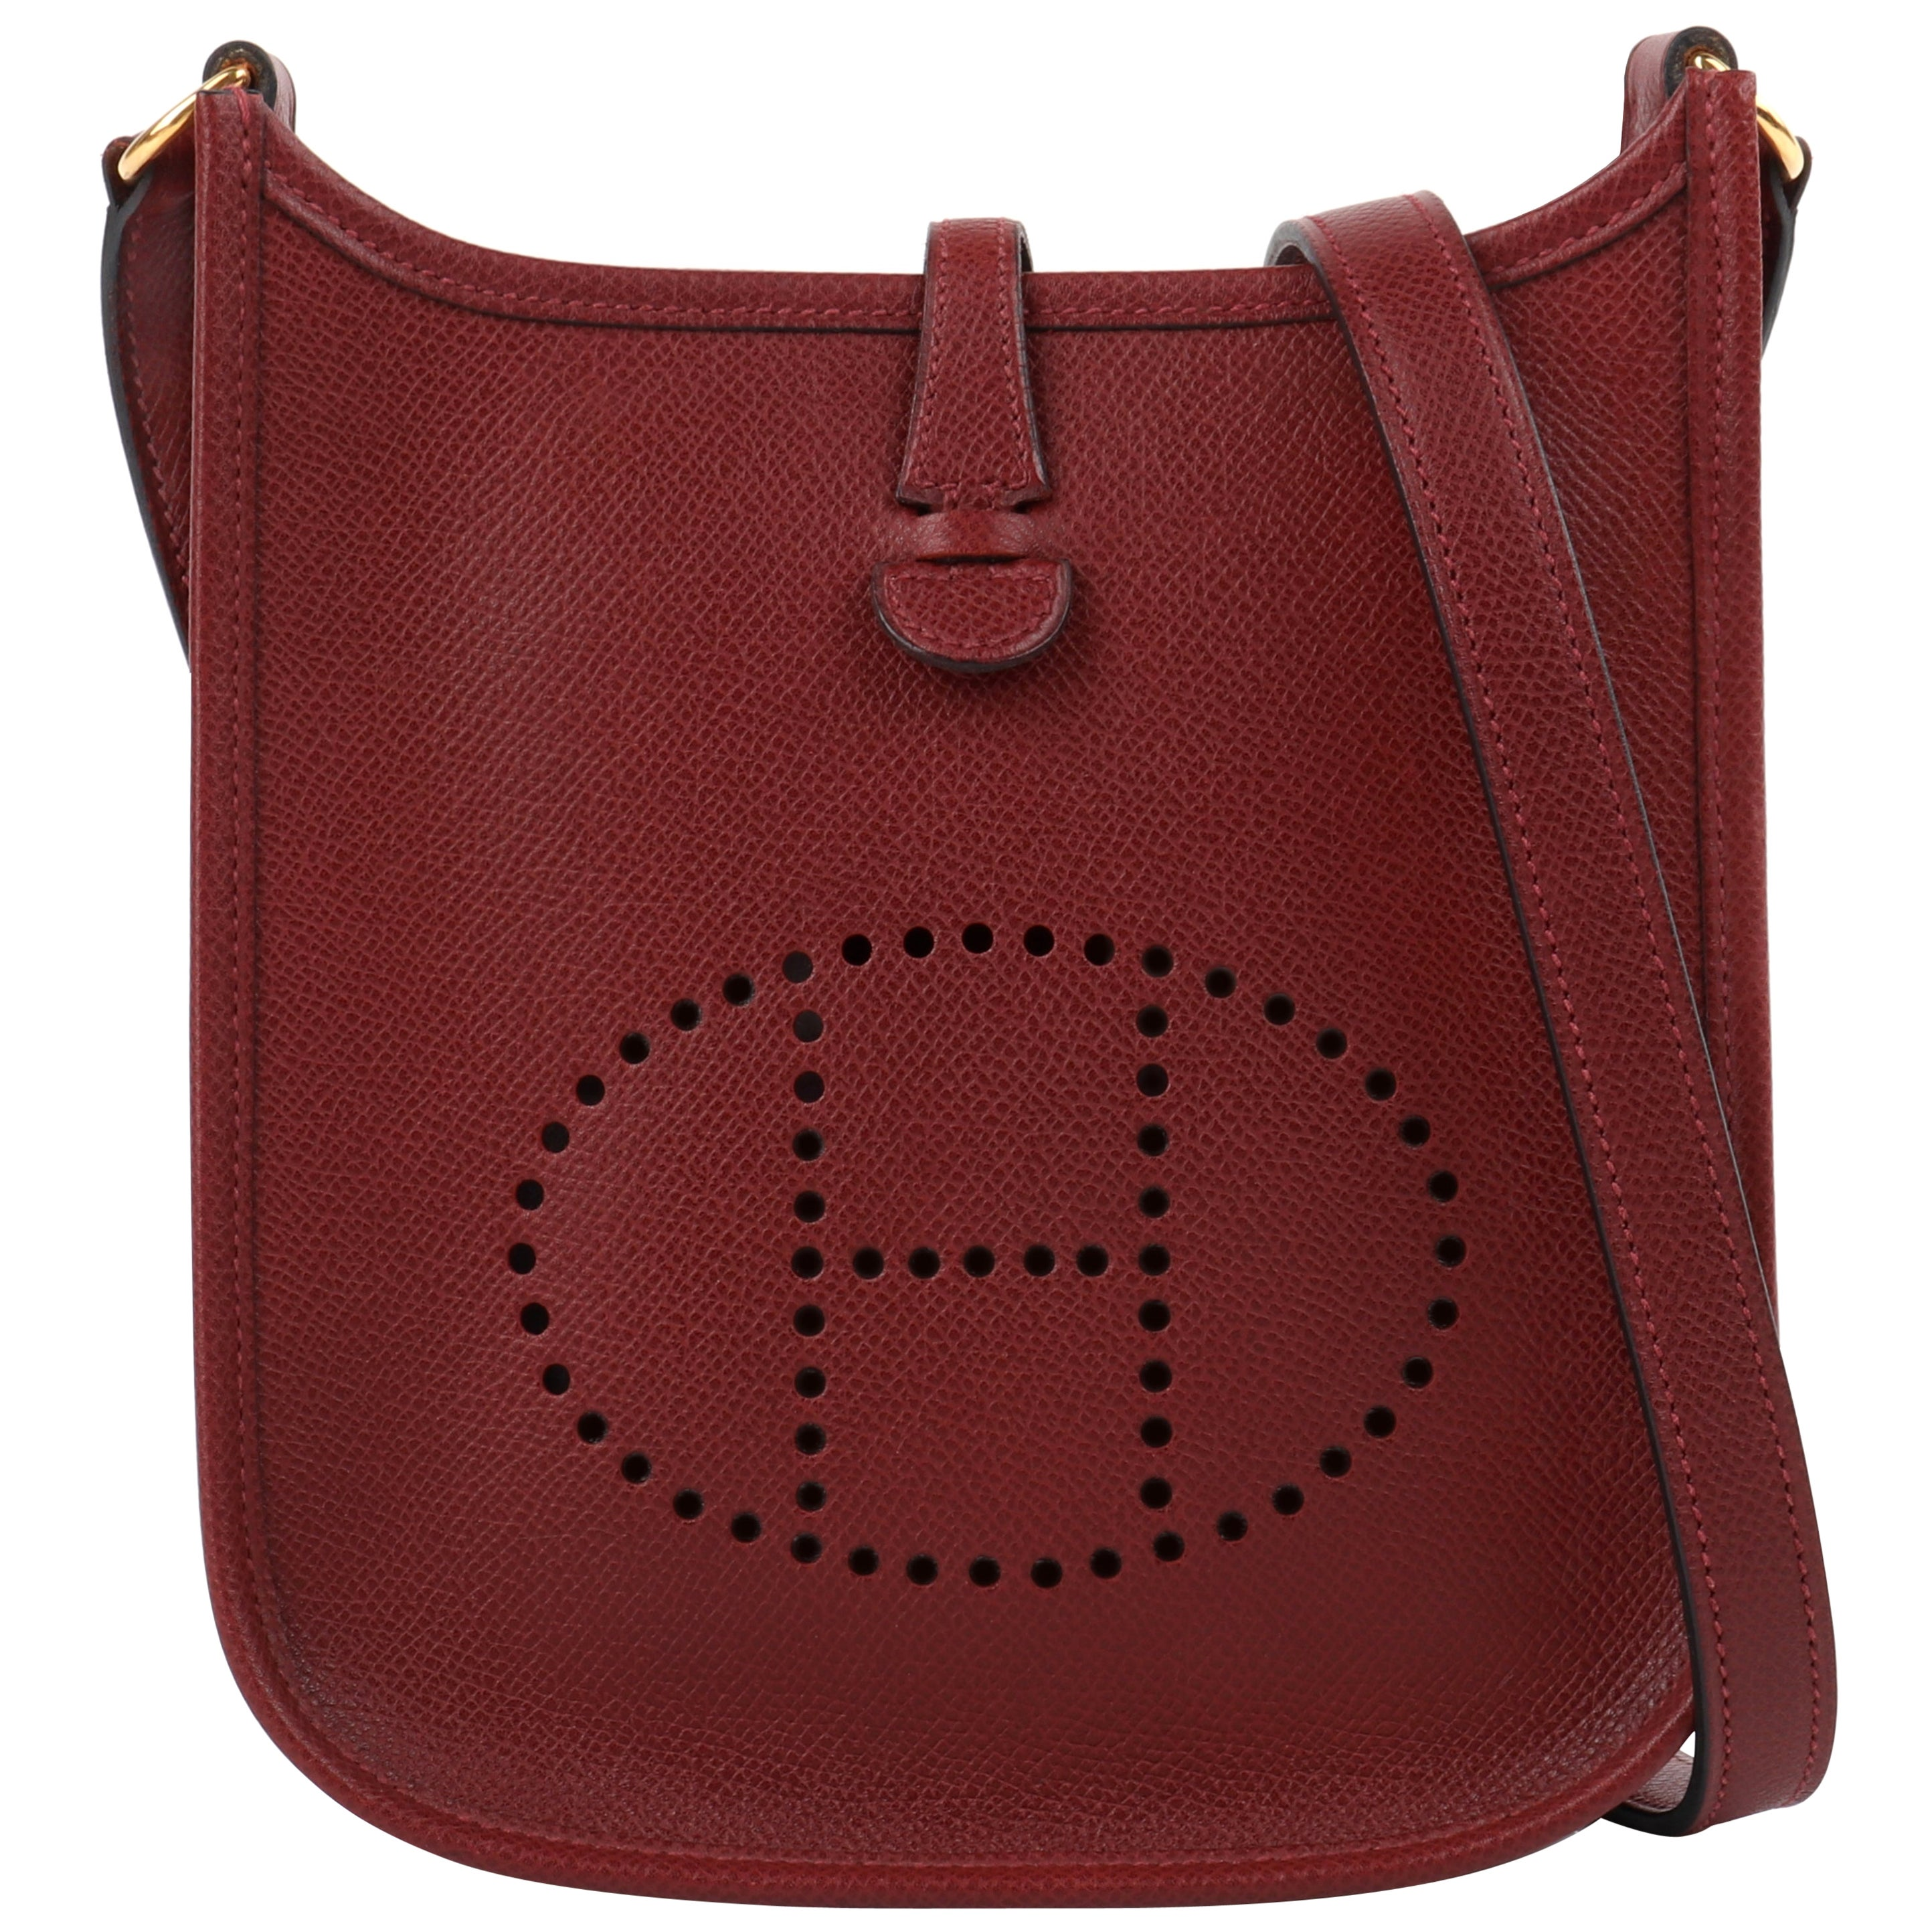 "HERMES ""Evelyne I"" 2004 Rouge Clemence Leather Perforated Logo Shoulder Bag TPM"